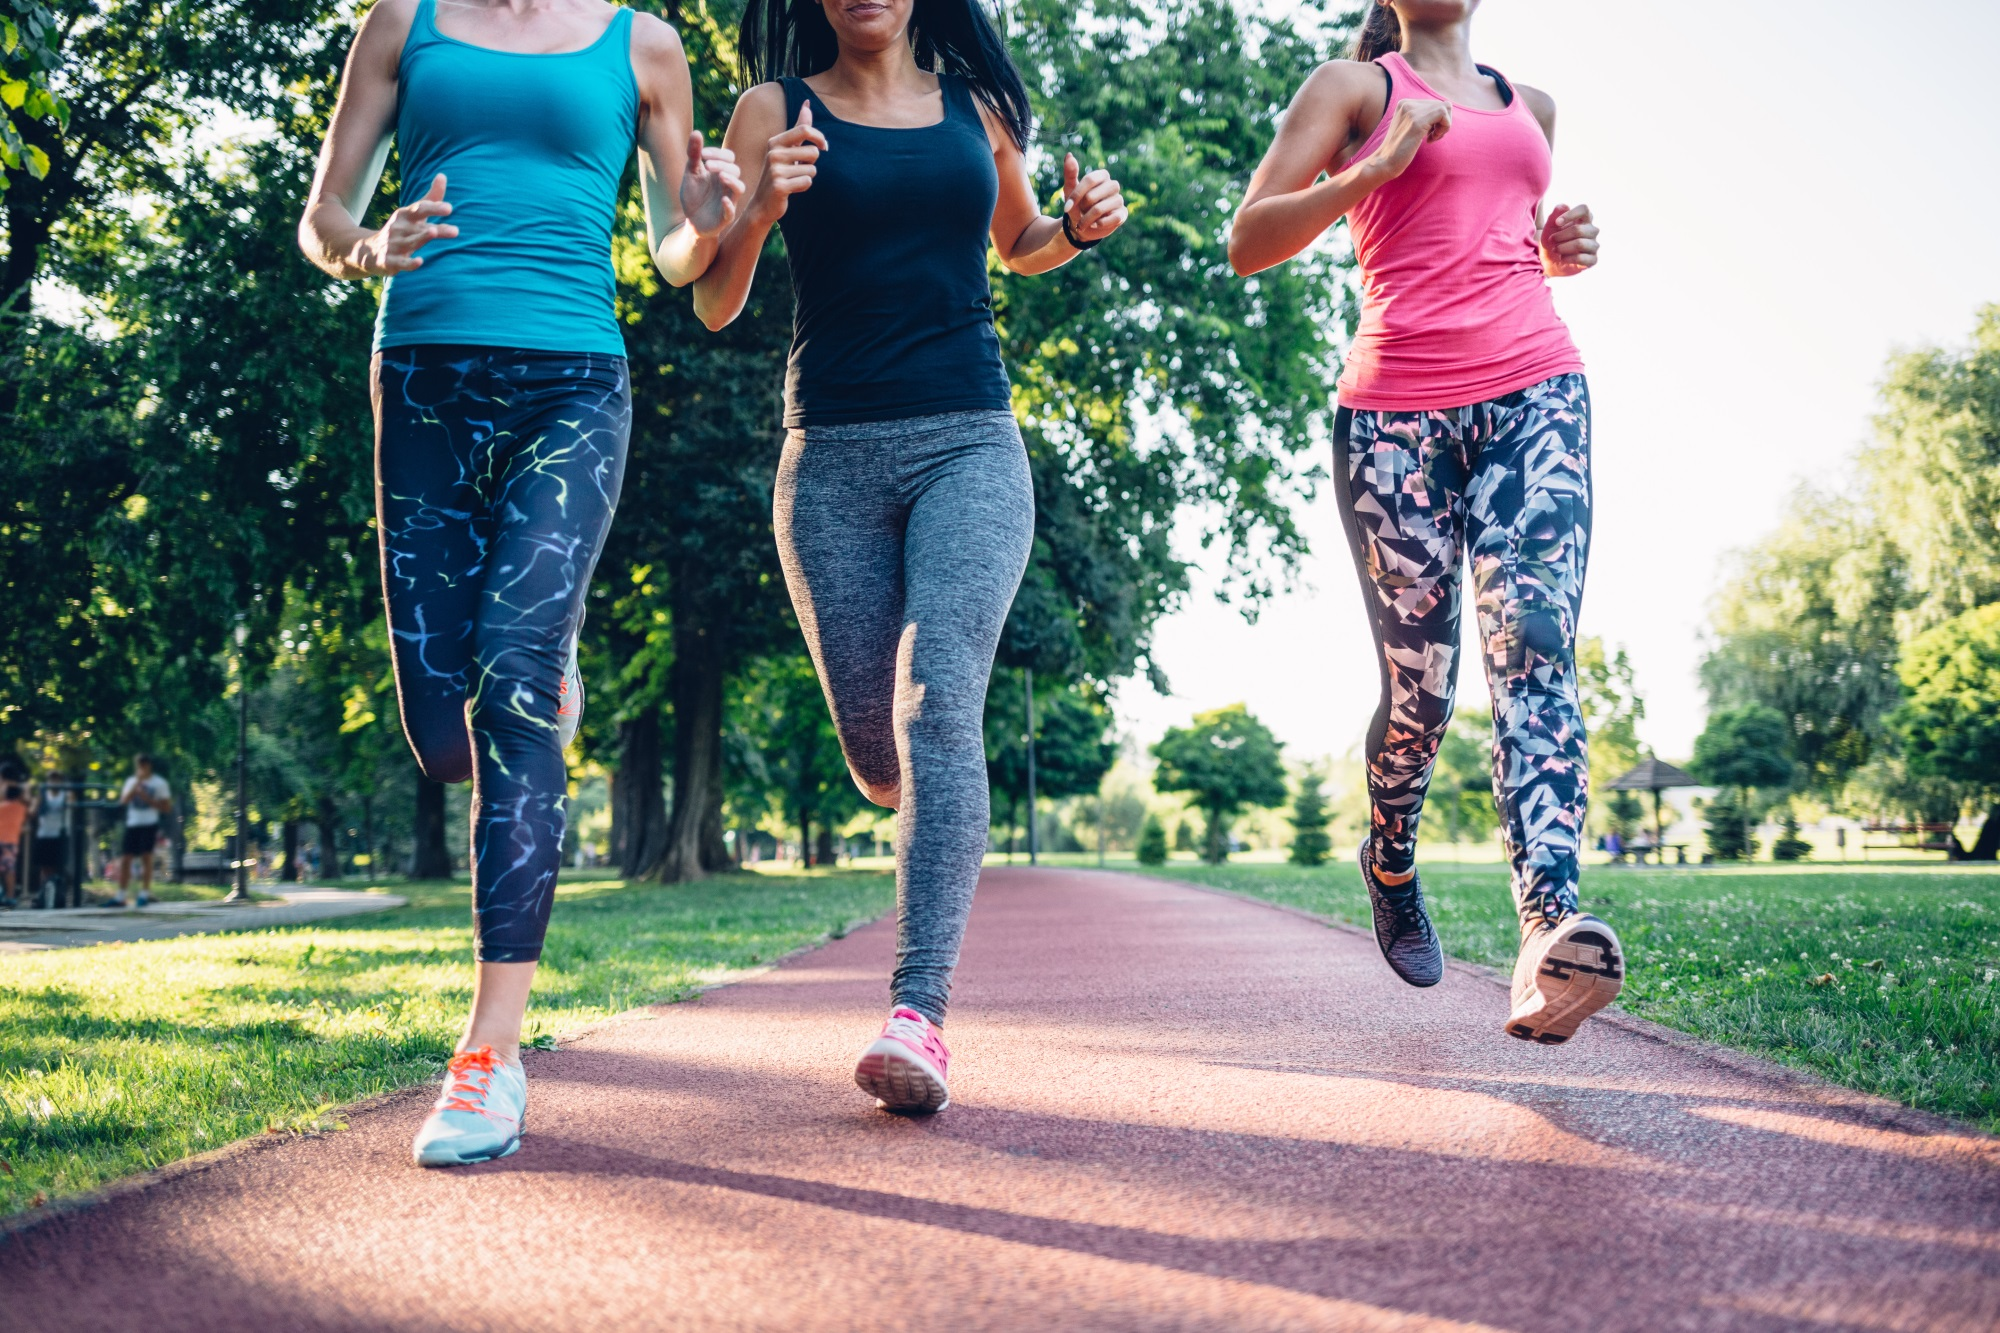 A women's running group jogging in the park